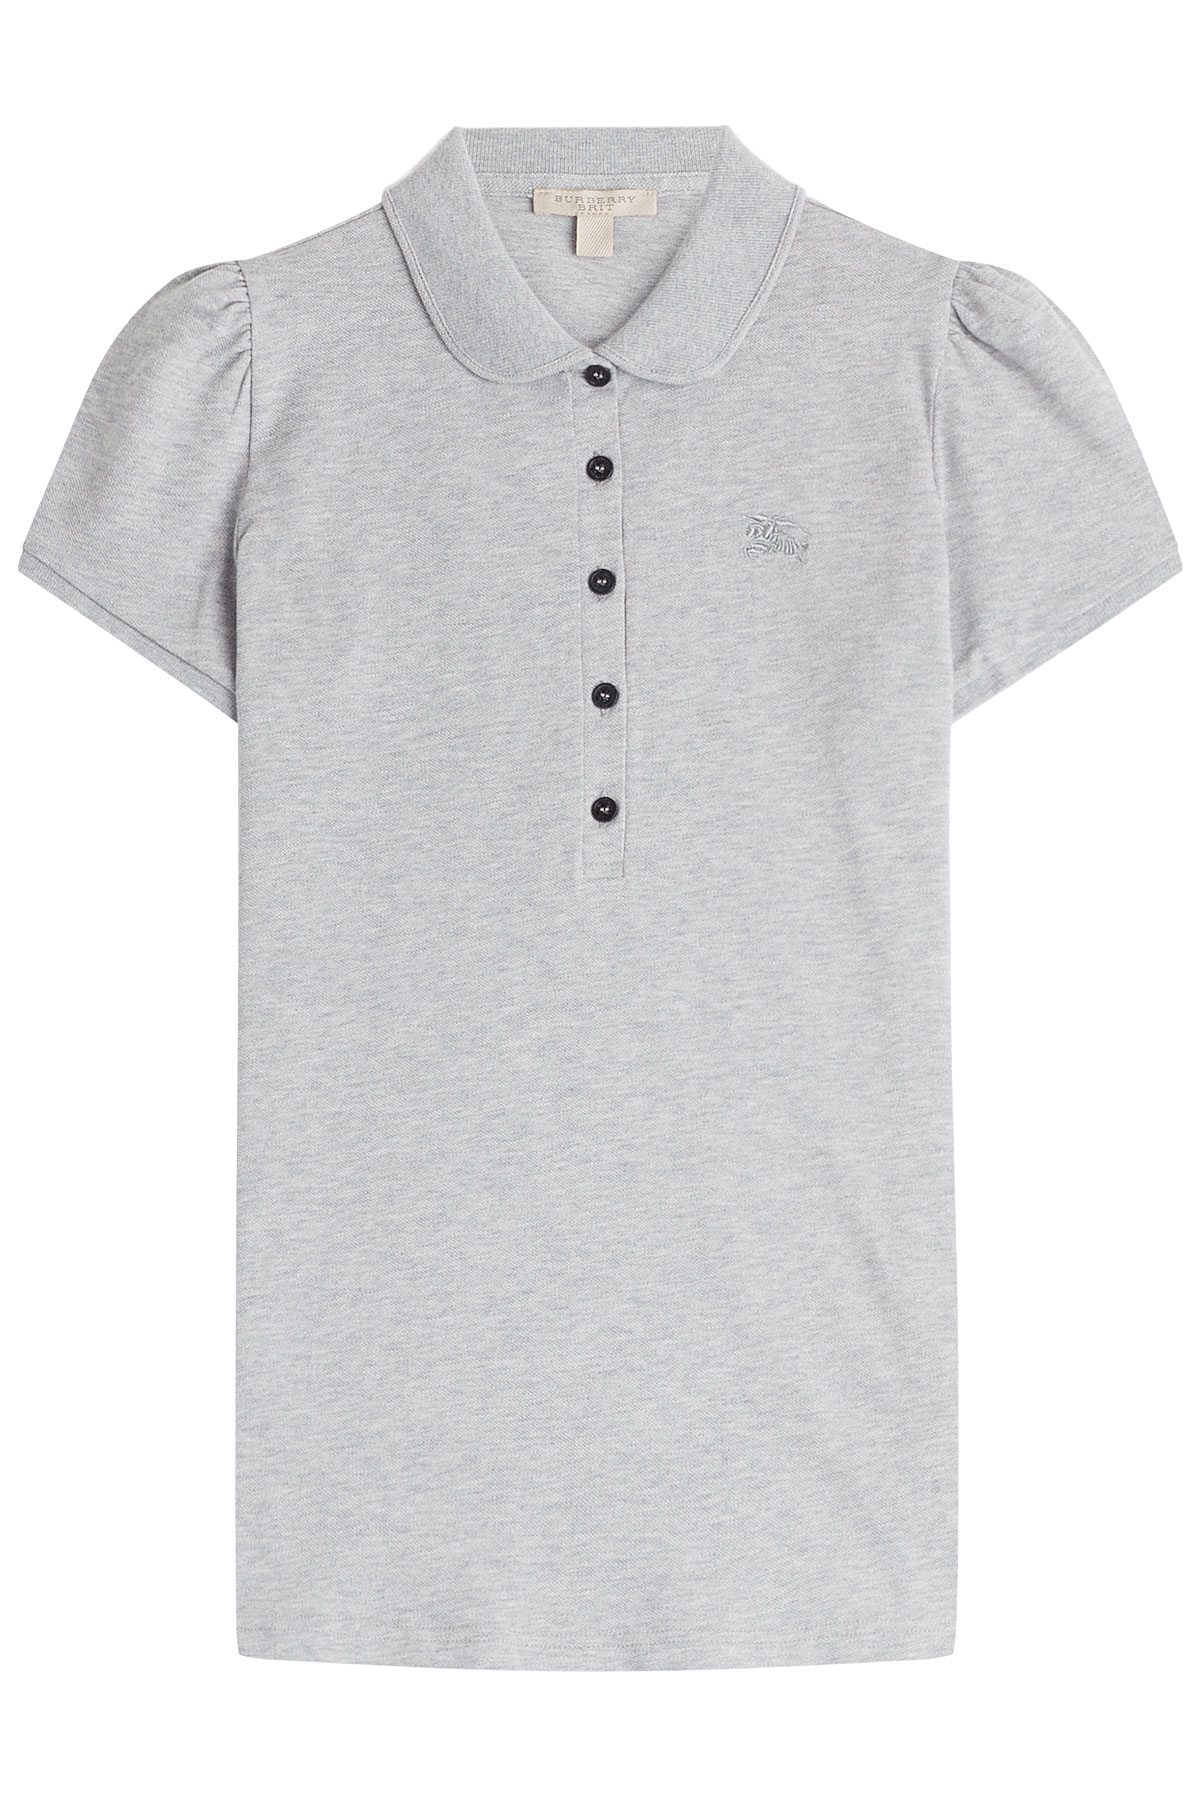 Burberry Brit Cotton Polo Shirt Grey In Gray Lyst